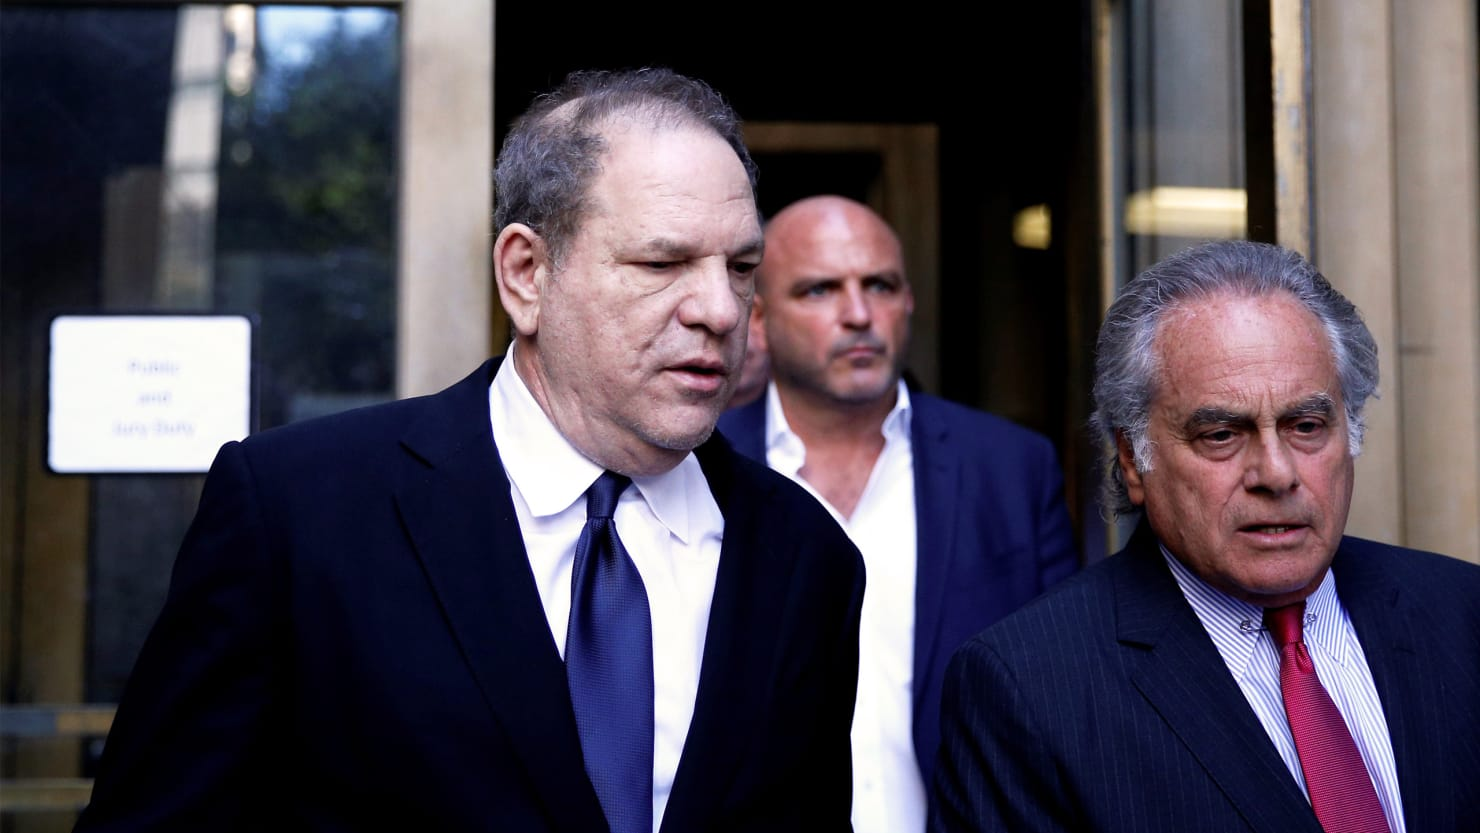 Weinstein's Rape Accuser Said 'I Love You' After Alleged Attack, Lawyers Say